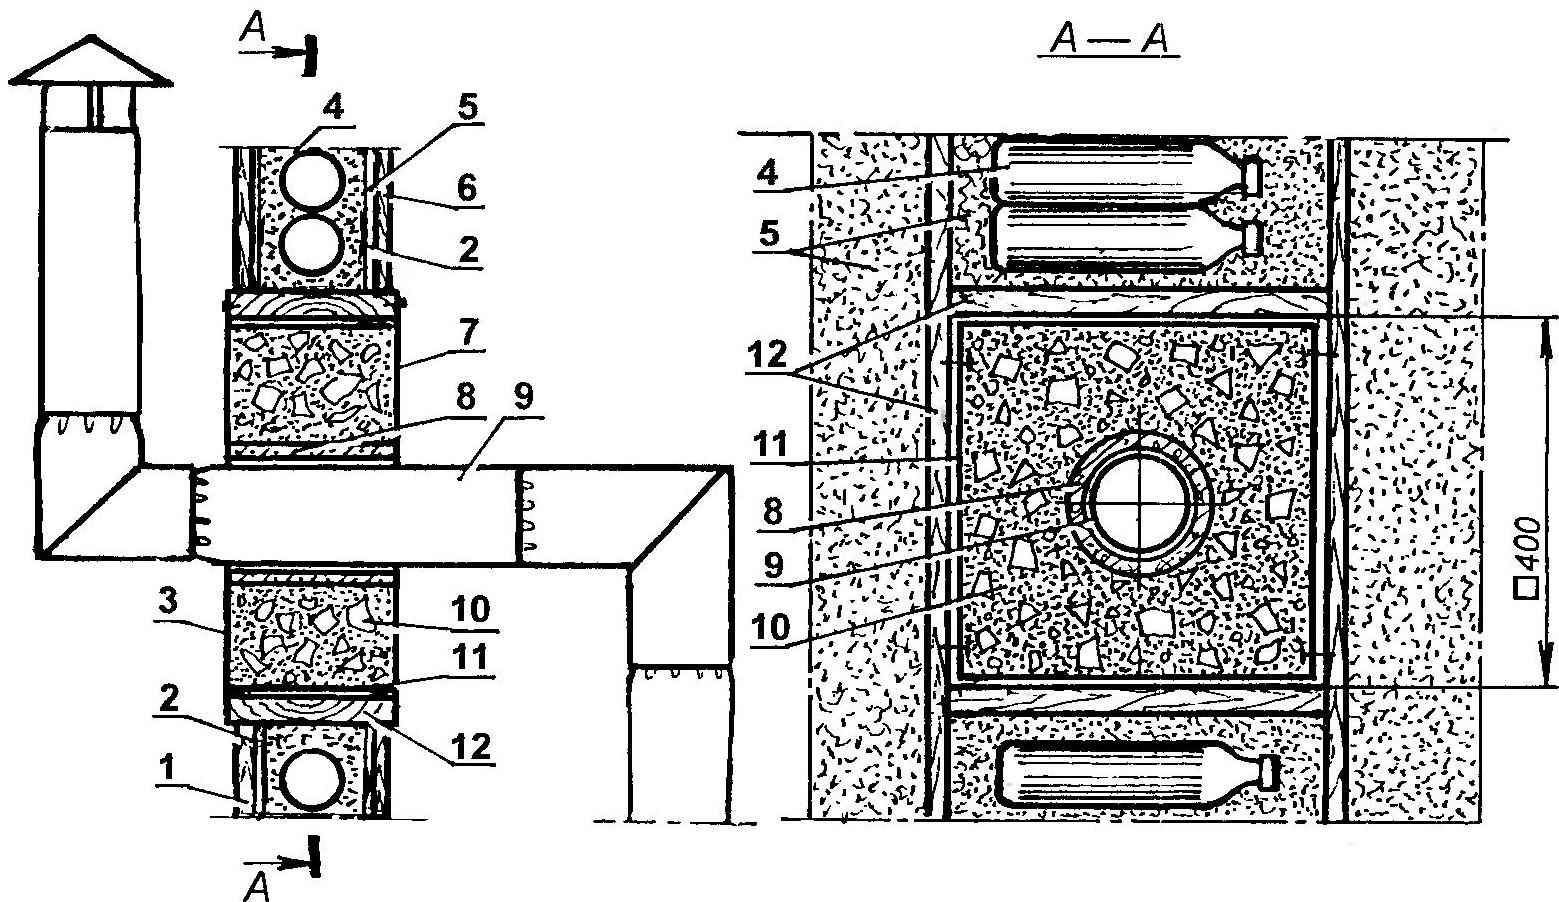 Fig. 2. The passage of the chimney through the wall